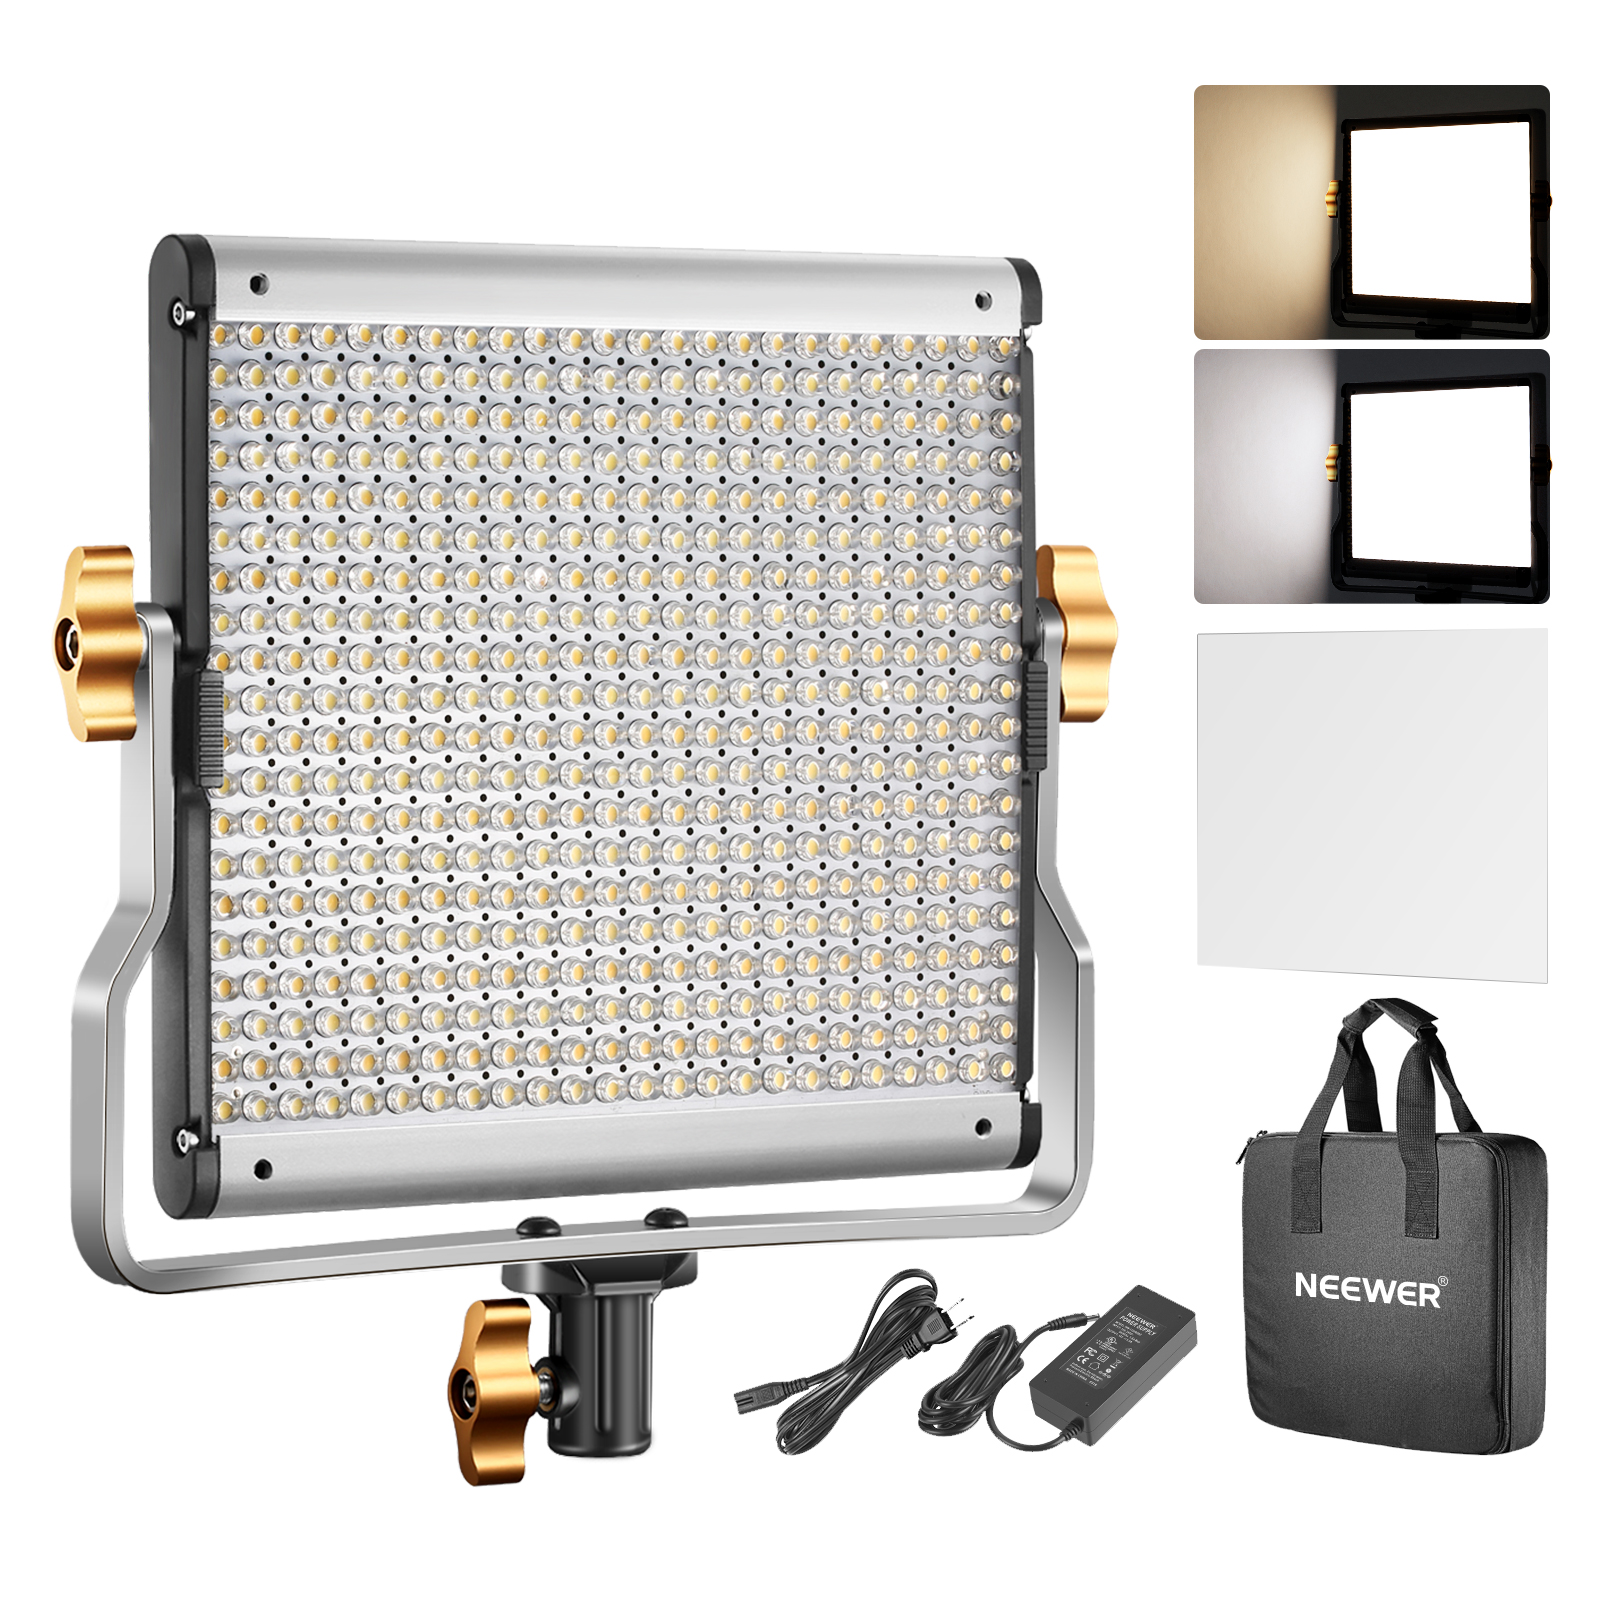 Details About Neewer Dimmable Bi Color Led Video Light Panel With U Bracket Support And Bag